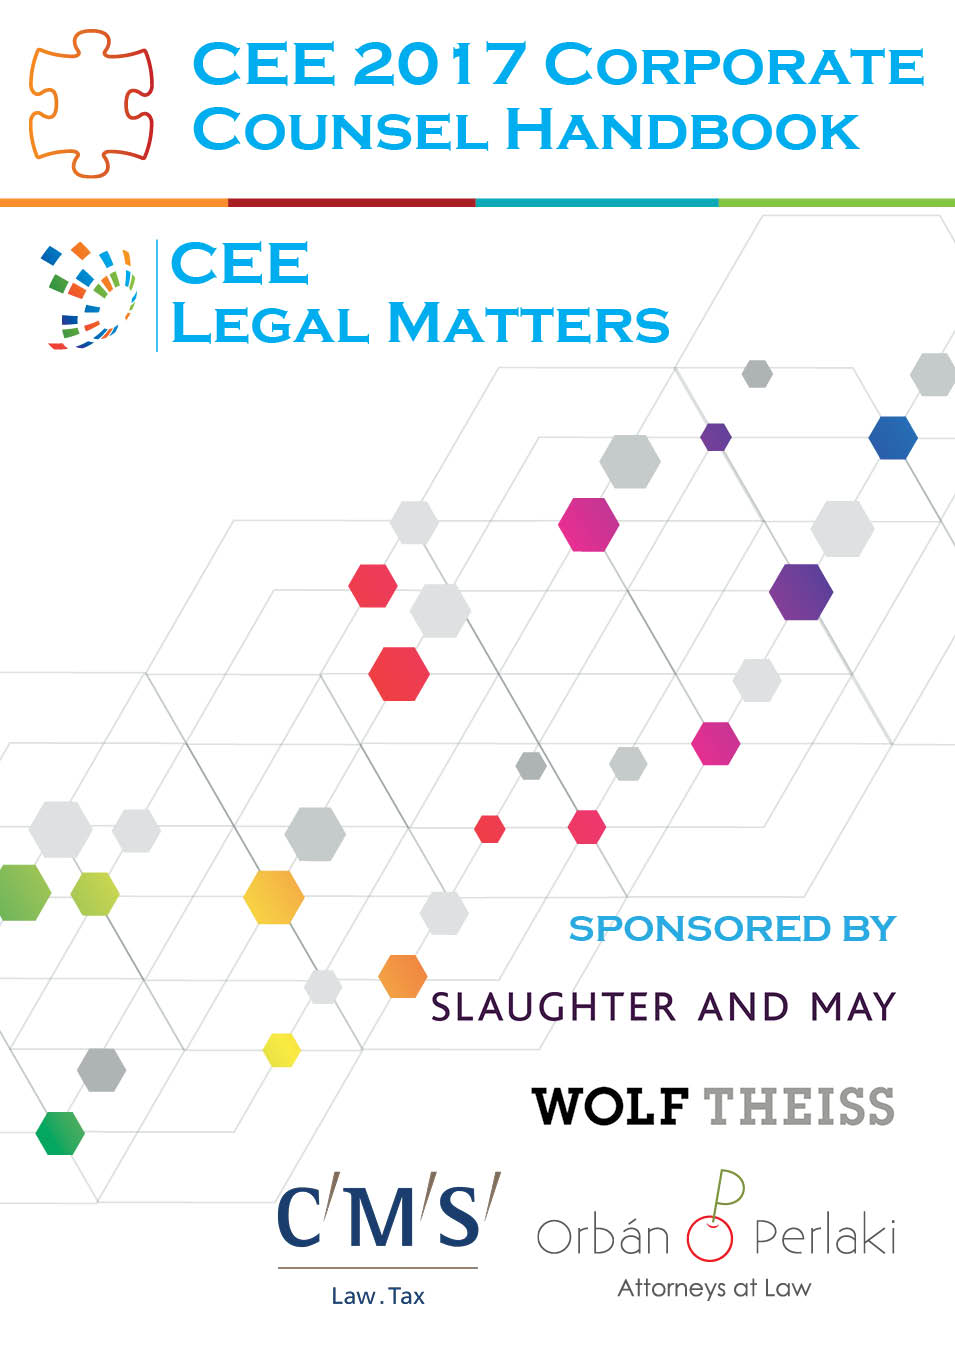 Corporate Counsel Handbook 2017 (Issue 4.4)